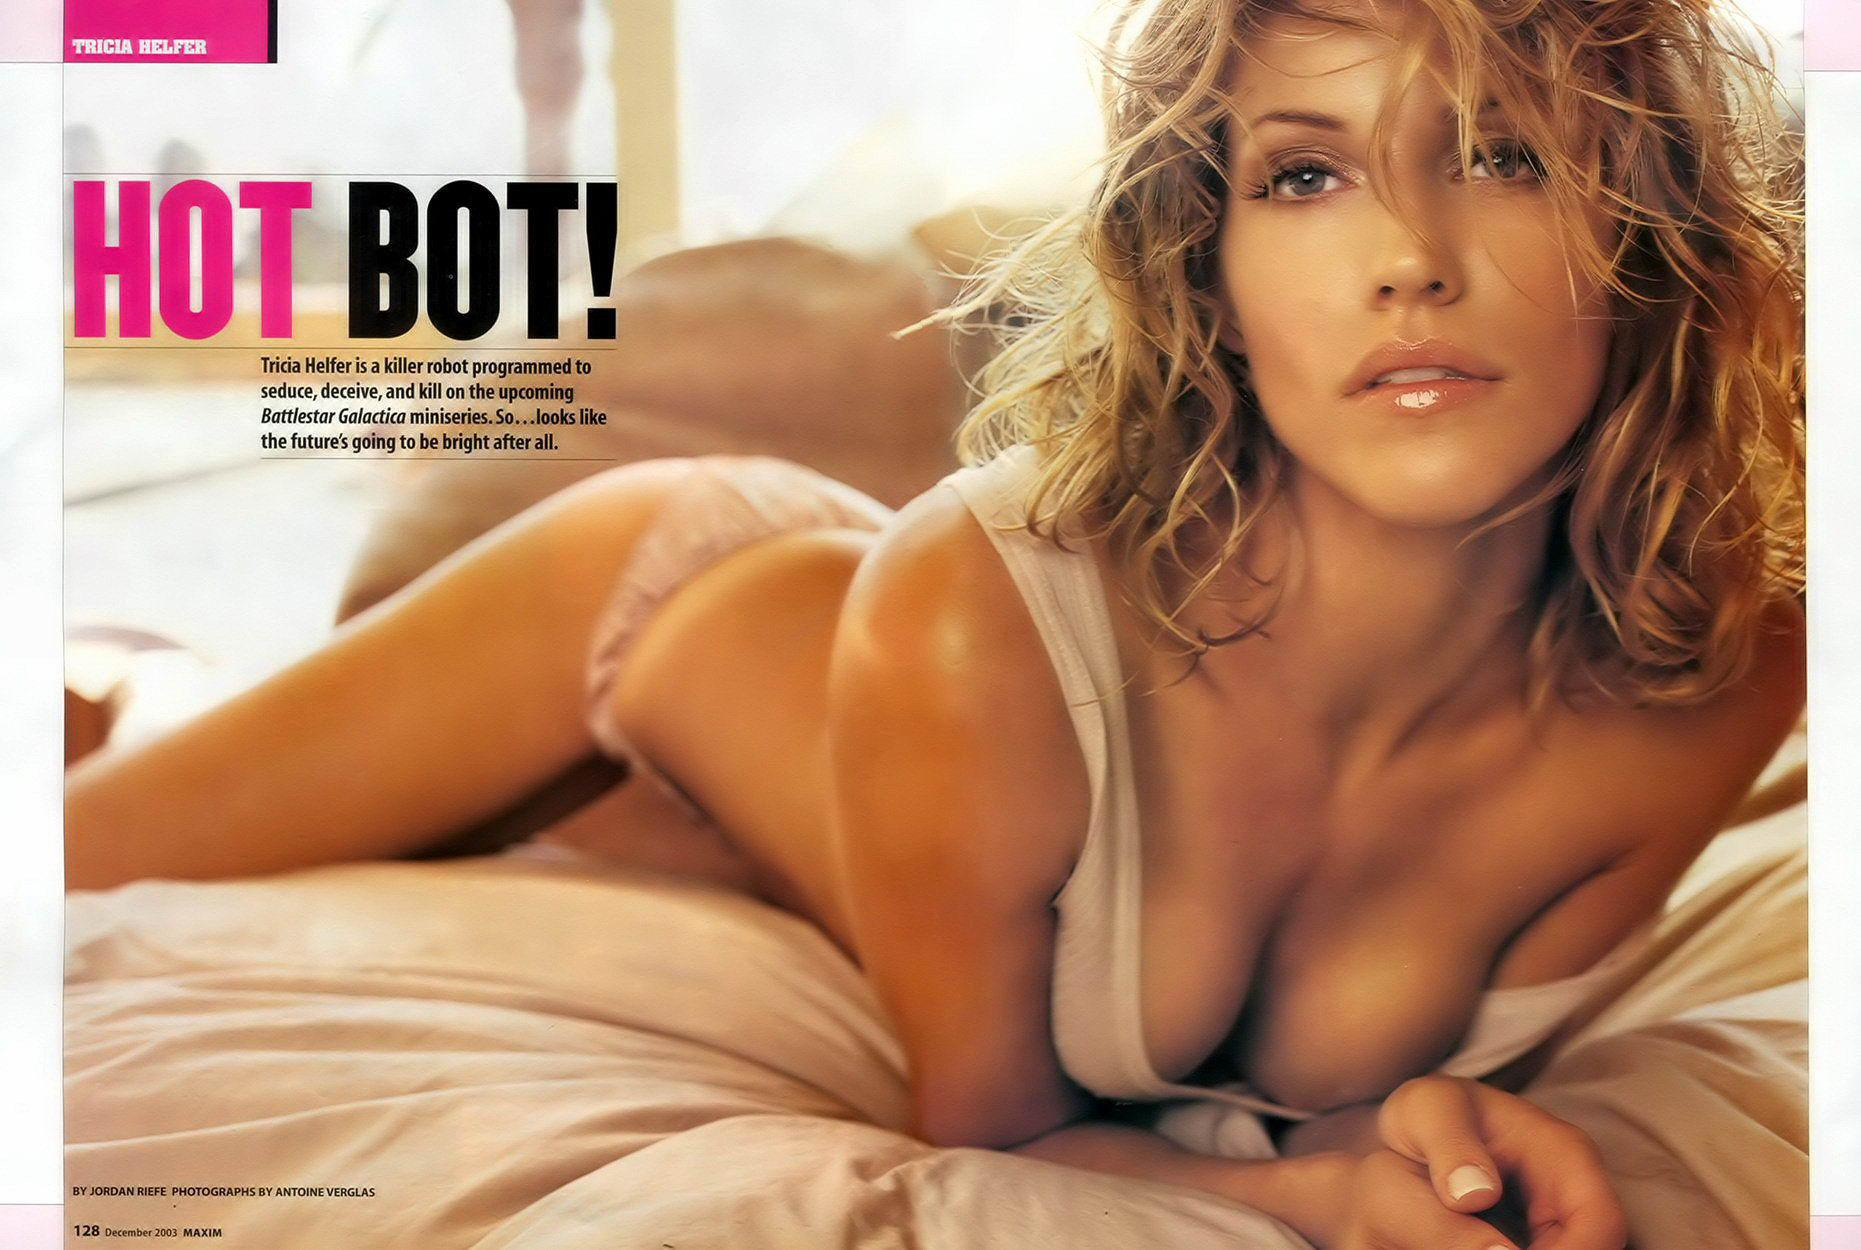 Tricia Helfer sexuales